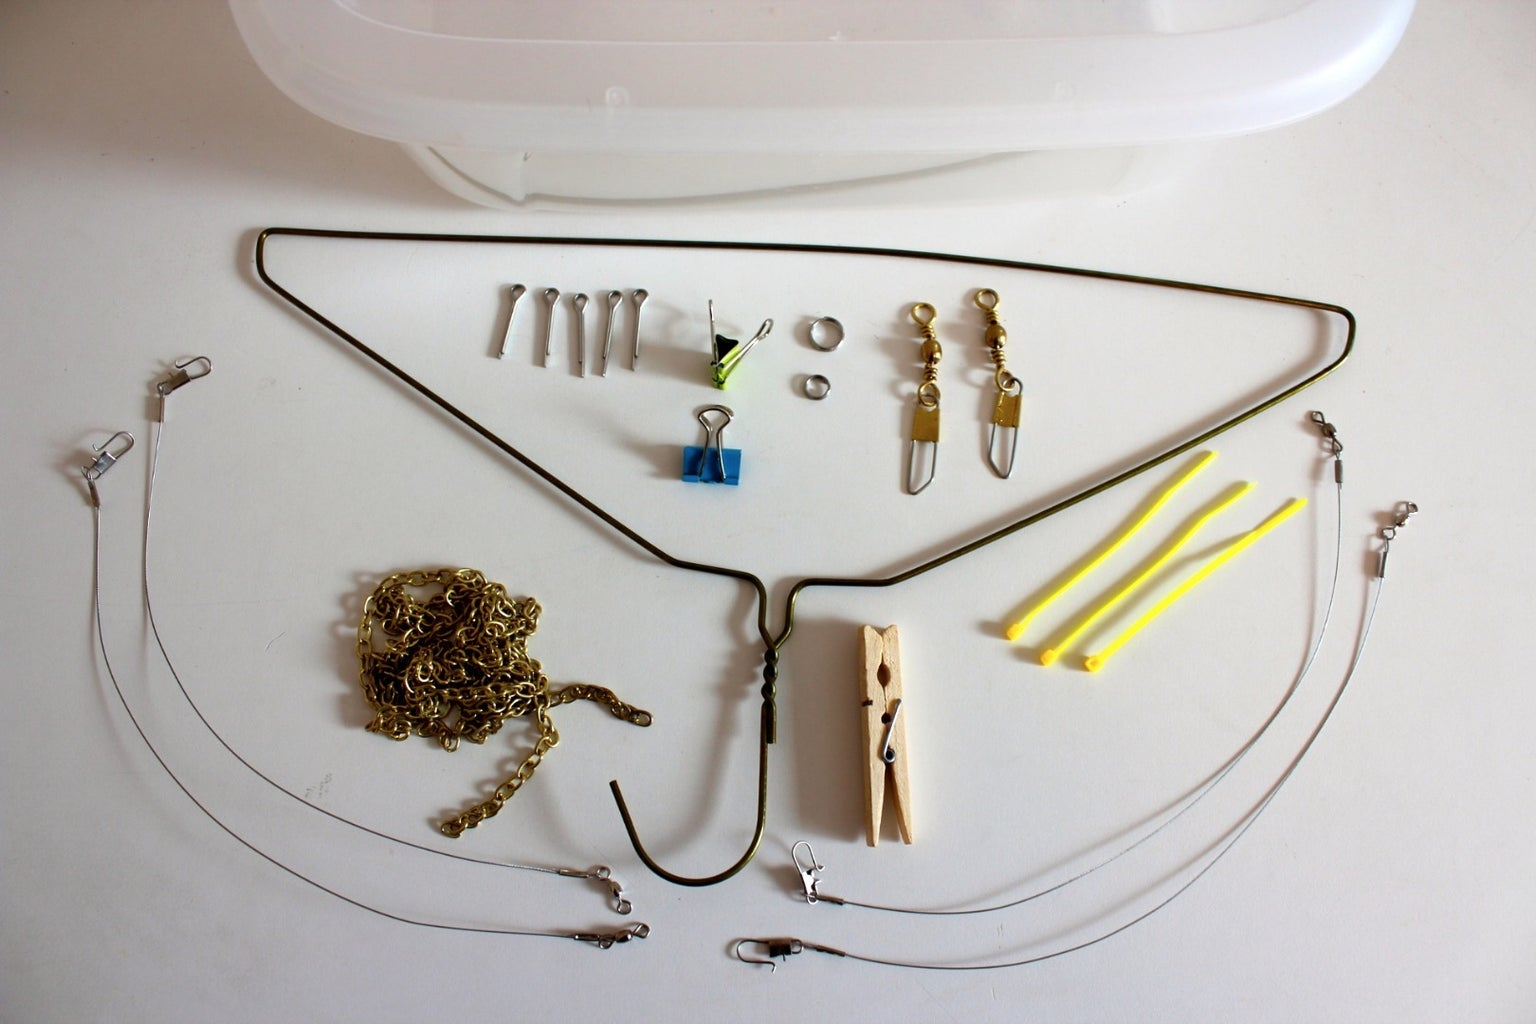 Parts Used for Drone Air One and Drone Air Two